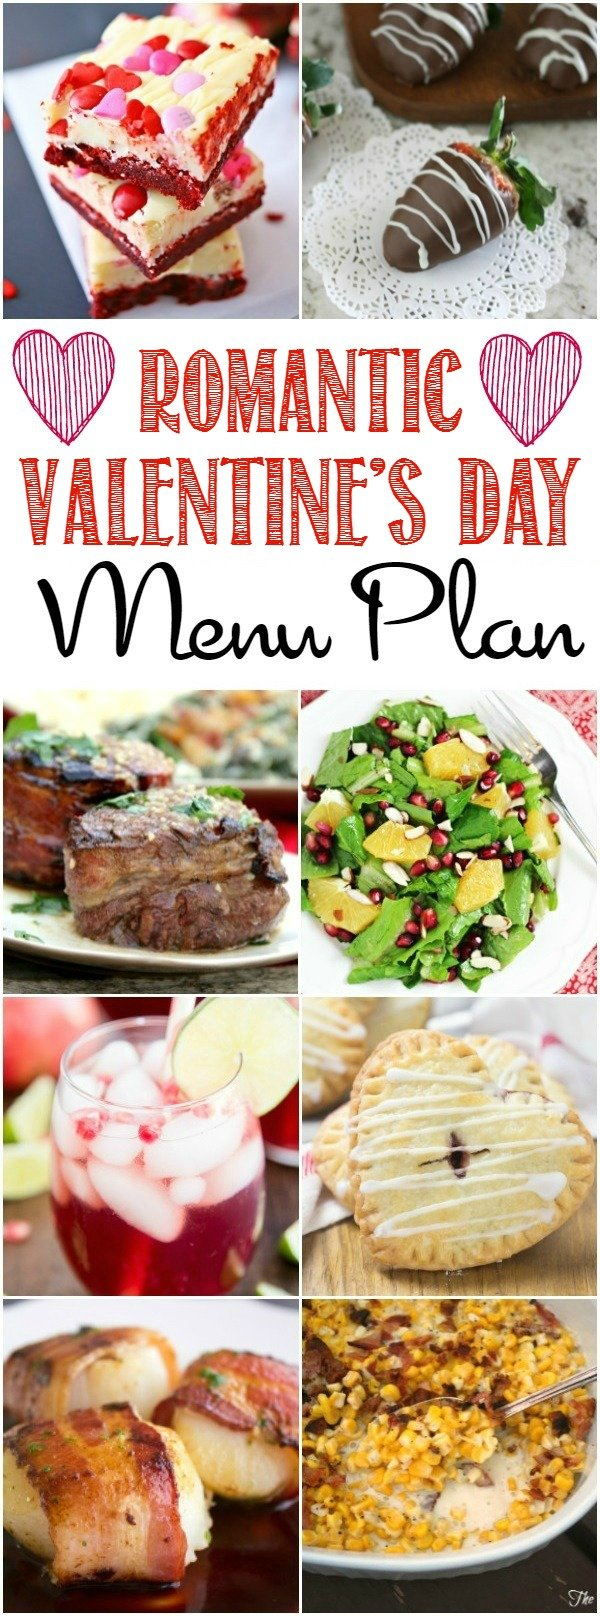 http://lizoncall.com/wp-content/uploads/2017/02/Romantic-Valentines-Day-Menu-Plan-HERO.jpg